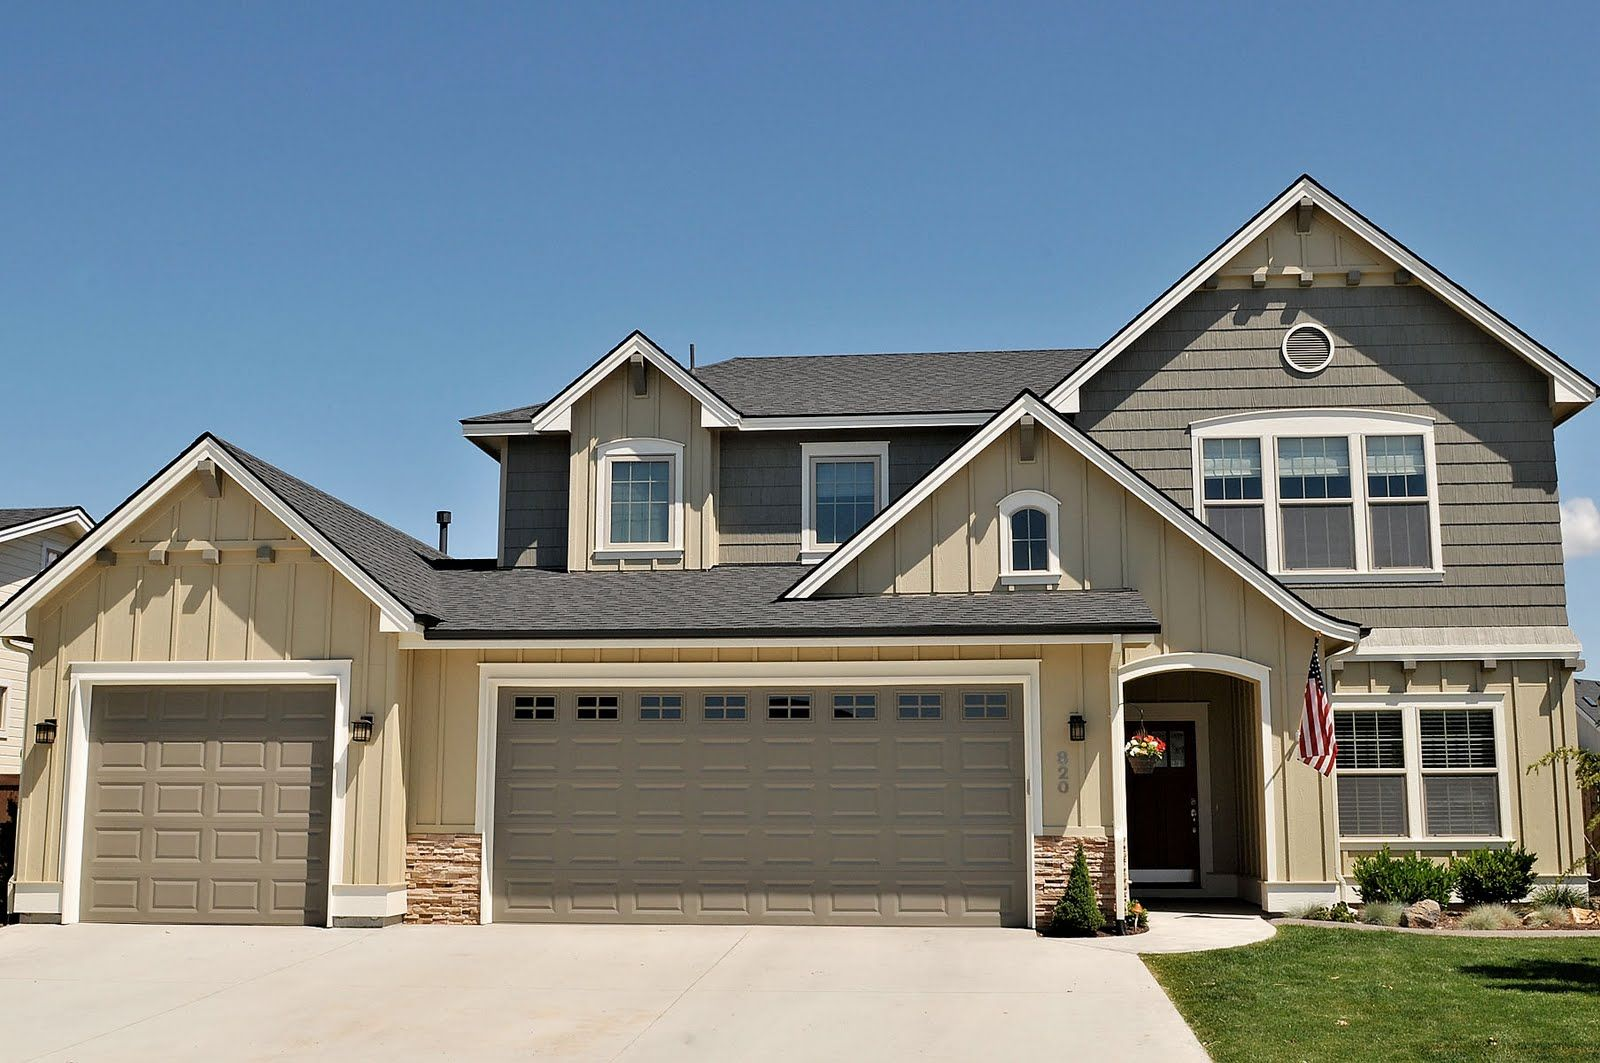 Garage exterior paint ideas - Spray Tech House Painting Boise Exterior House Paint Before And After Boise House Painter